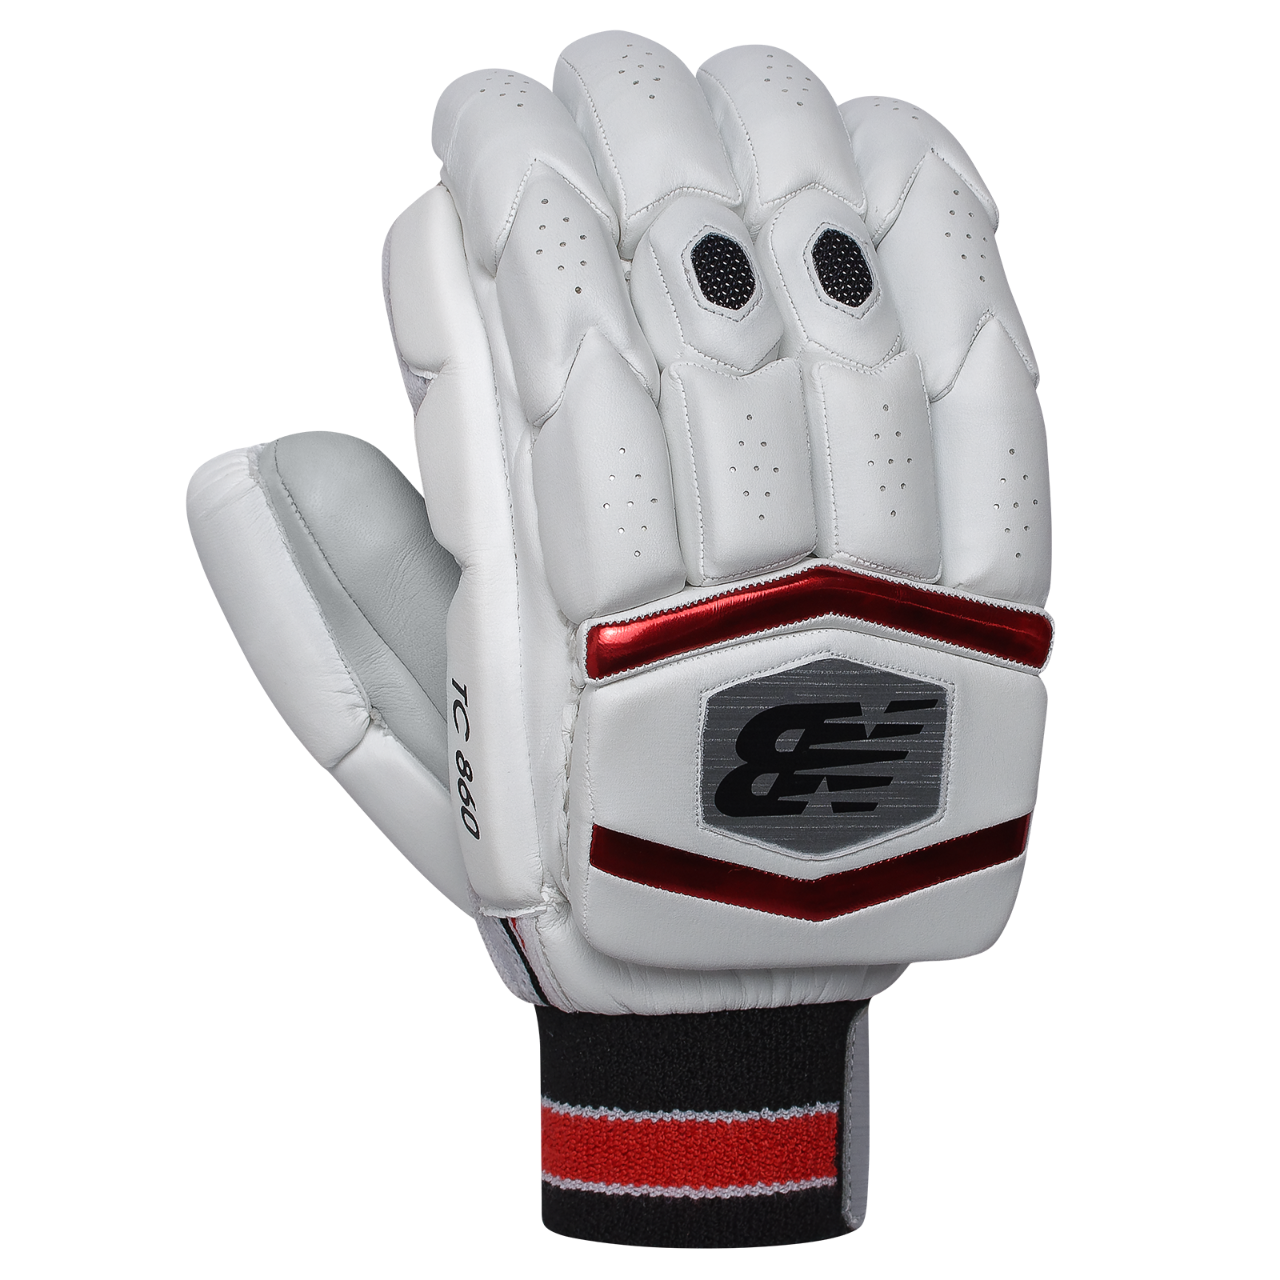 2021 New Balance TC 860 Junior Batting Gloves